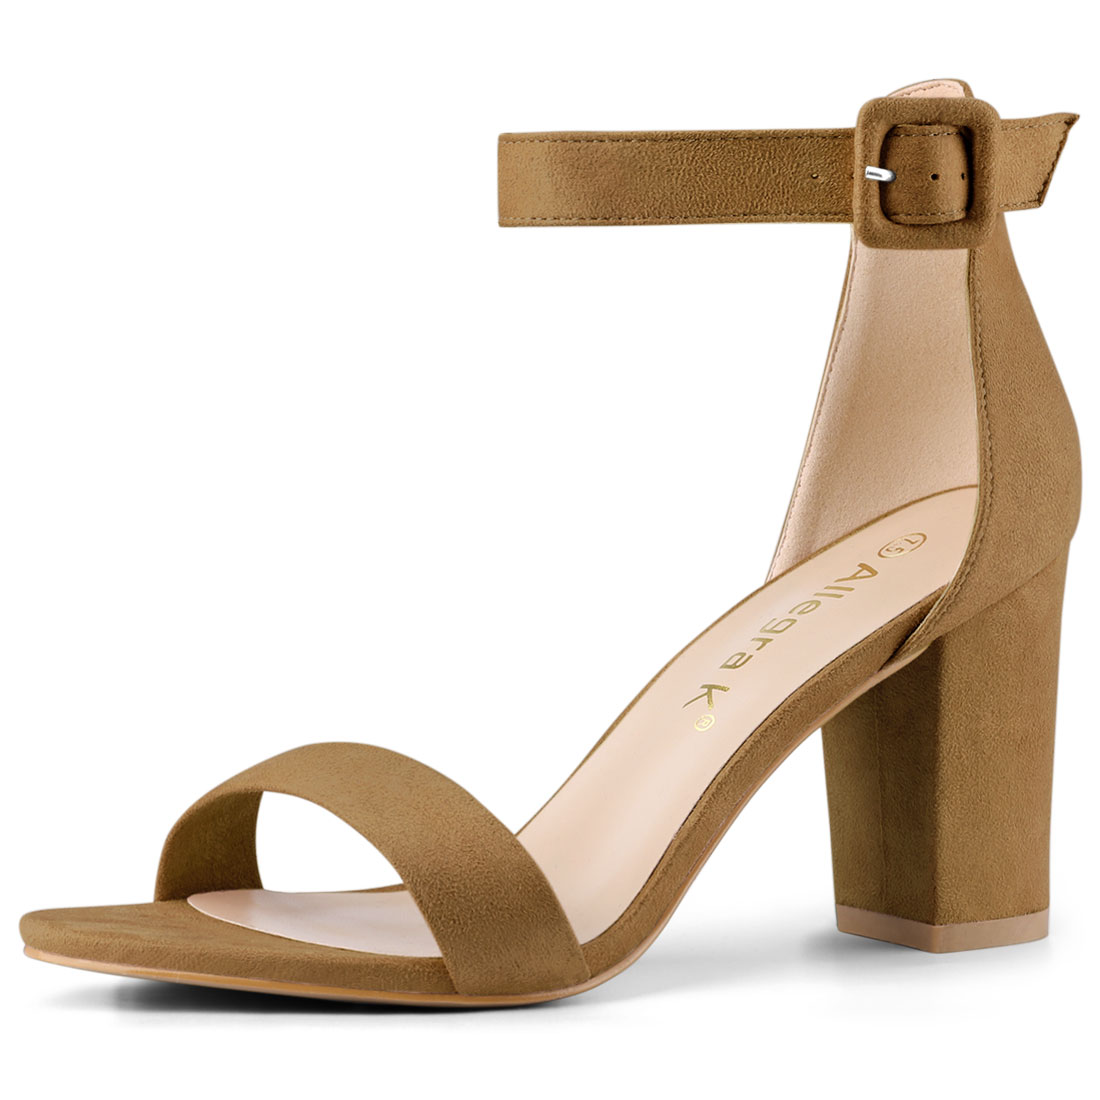 Woman Open Toe Chunky High Heel Ankle Strap Sandals Camel US 7